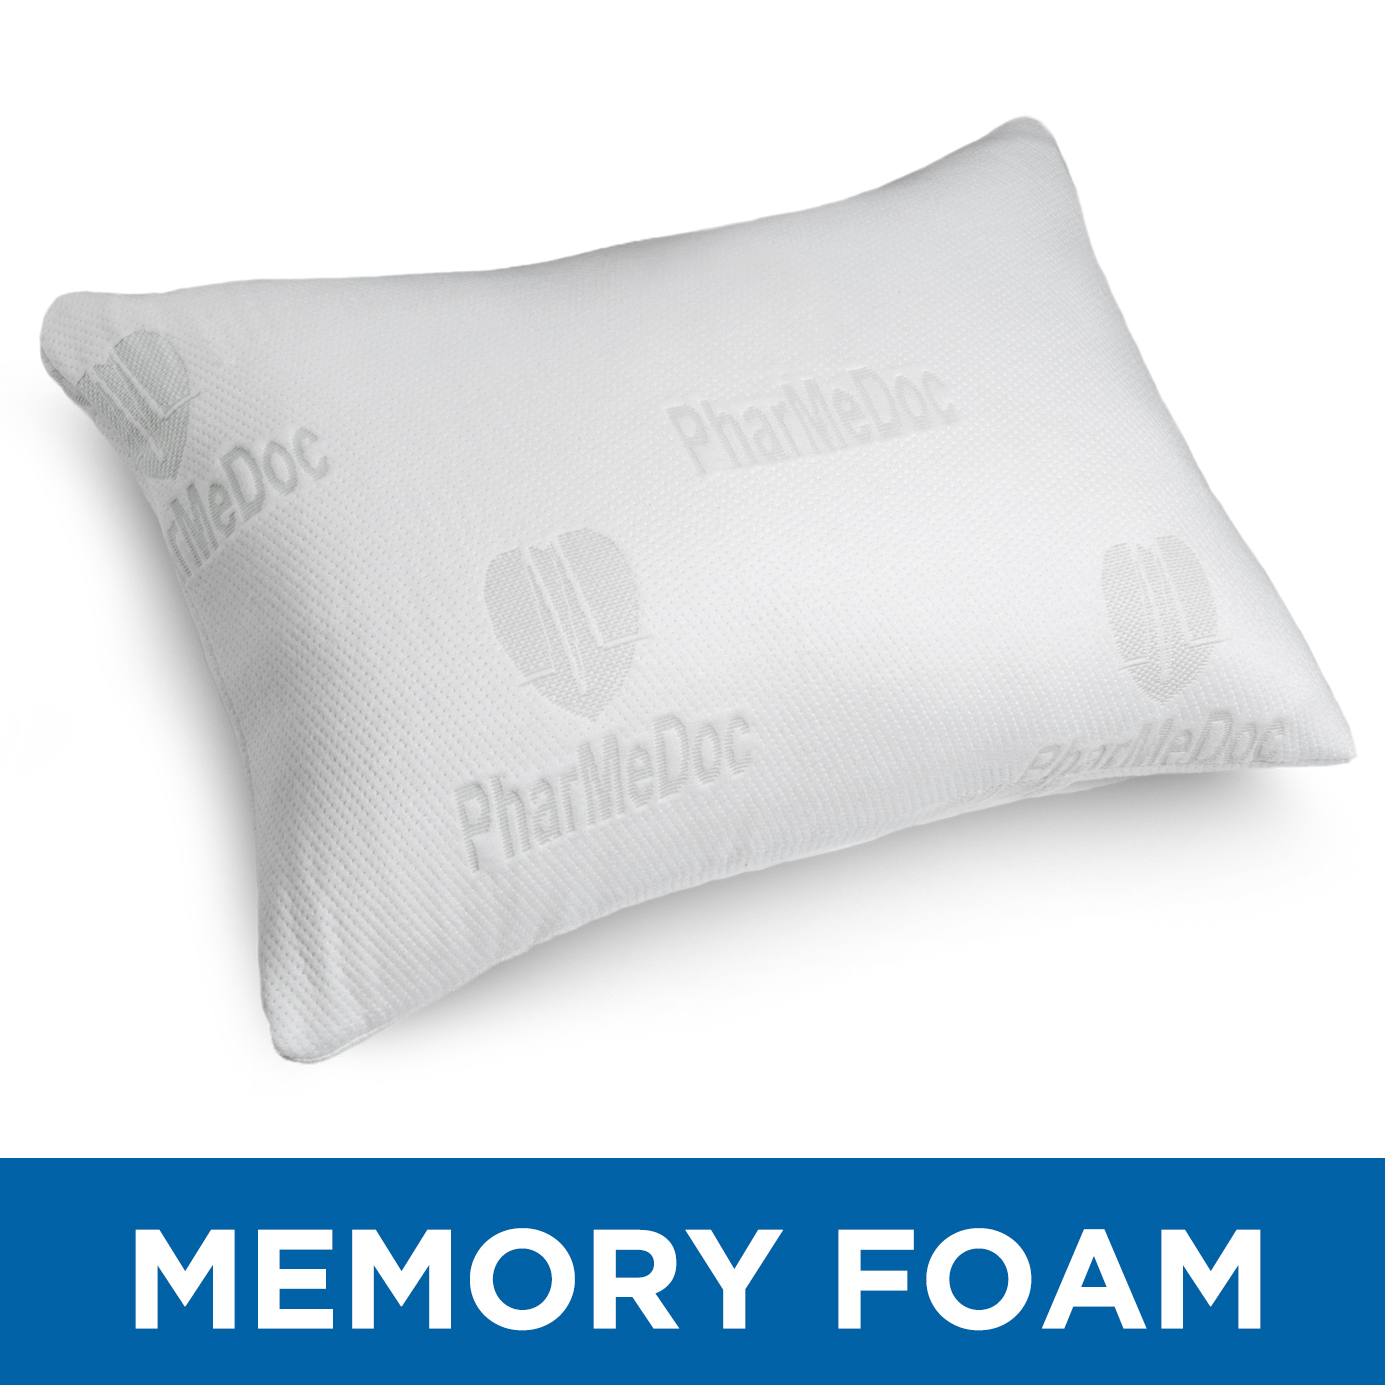 PharMeDoc Shredded Memory Foam Pillow w/ Washable Case - Bed Pillow for Side Sleepers (King Size)